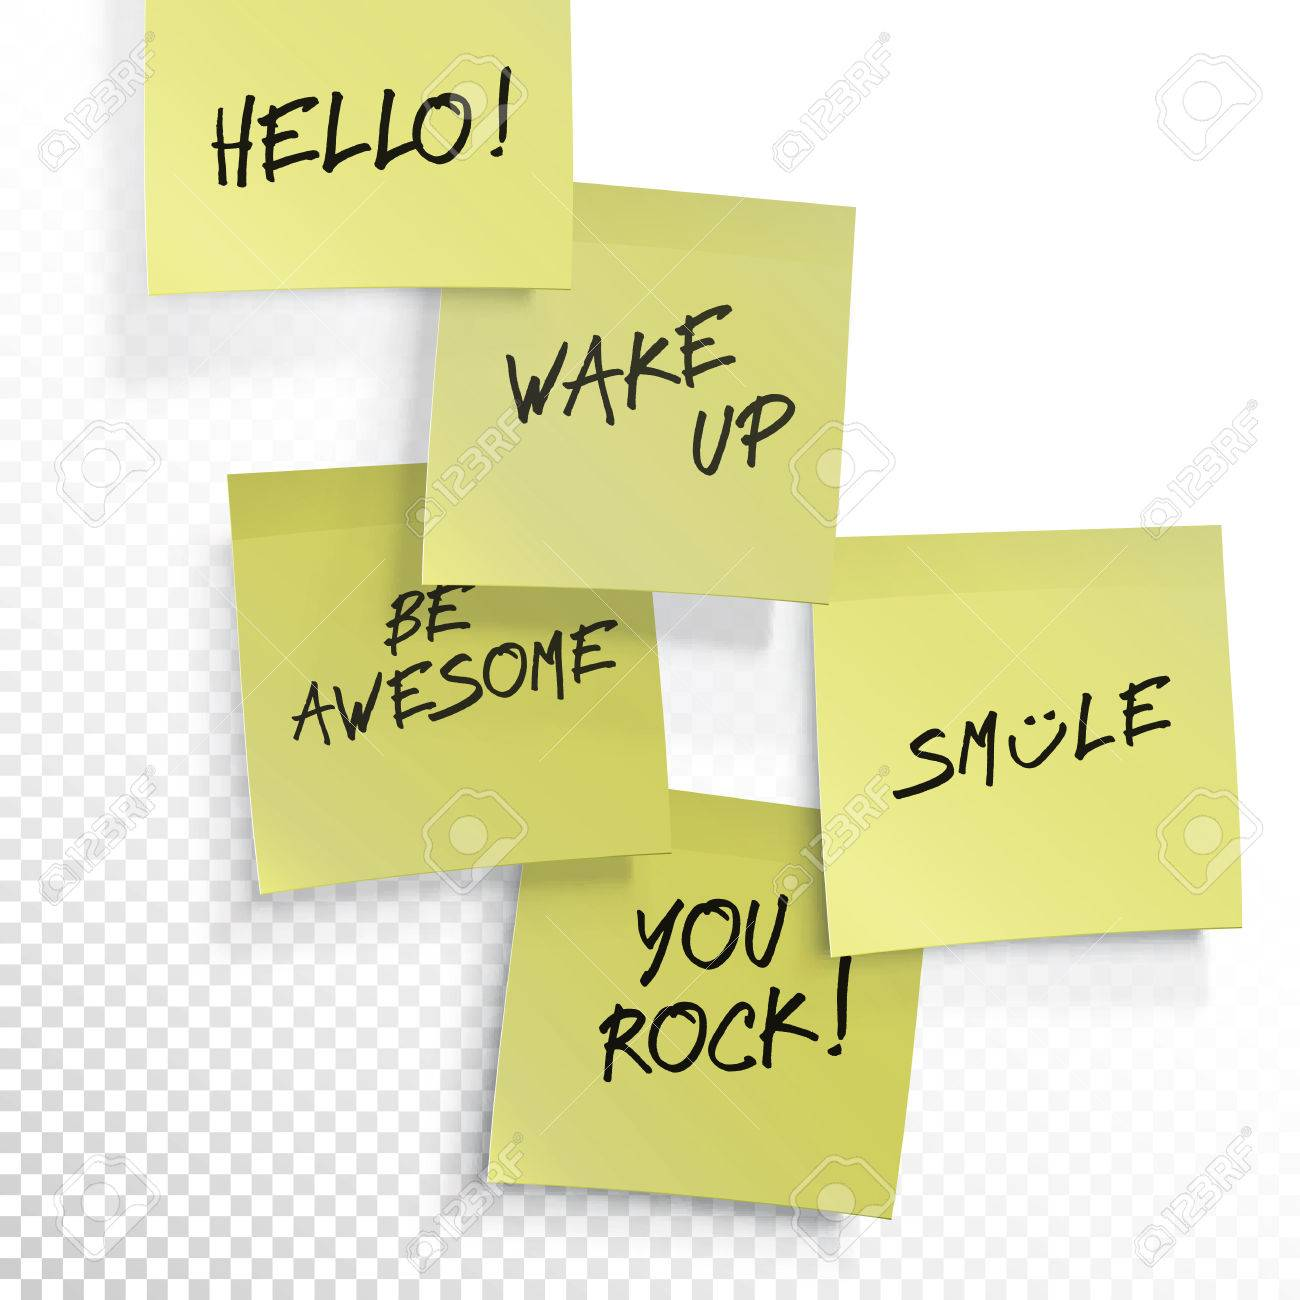 picture relating to Editable Post It Note Template titled Wake up, be astounding, o, smile, your self rock - established of inspirational..